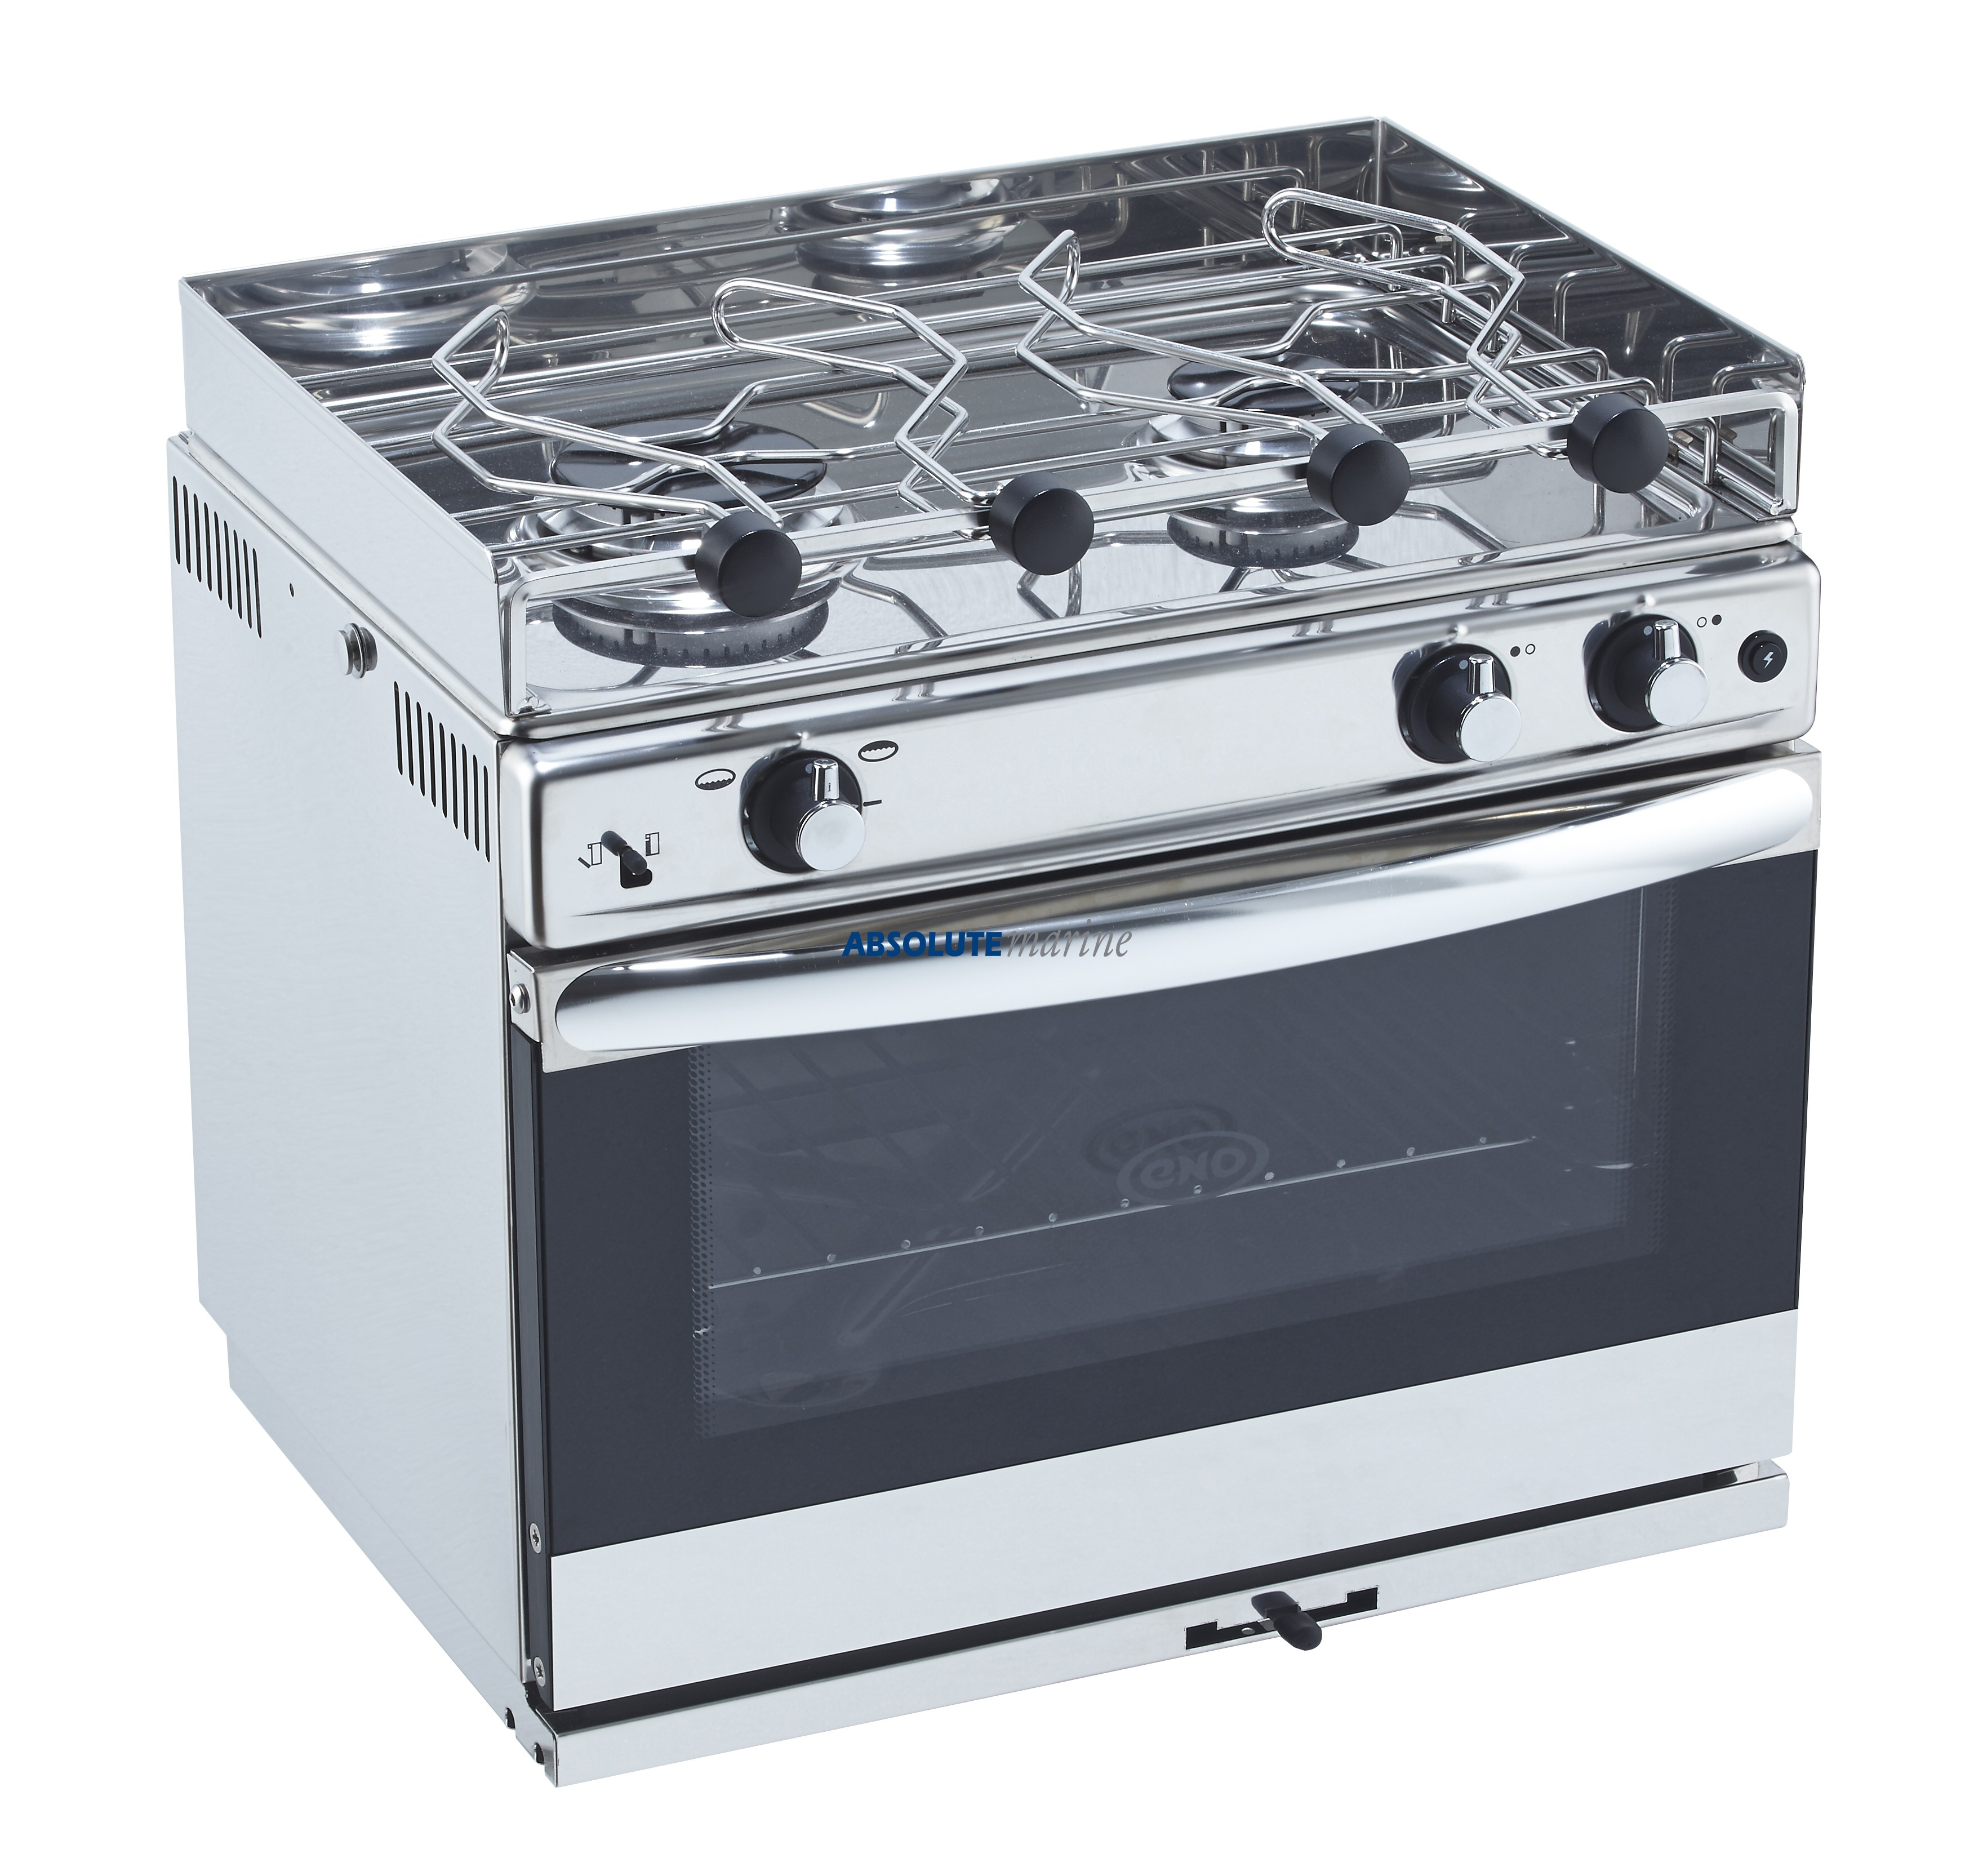 Electric Rv Stove And Oven ~ Eno burner oven with grill open sea absolute marine